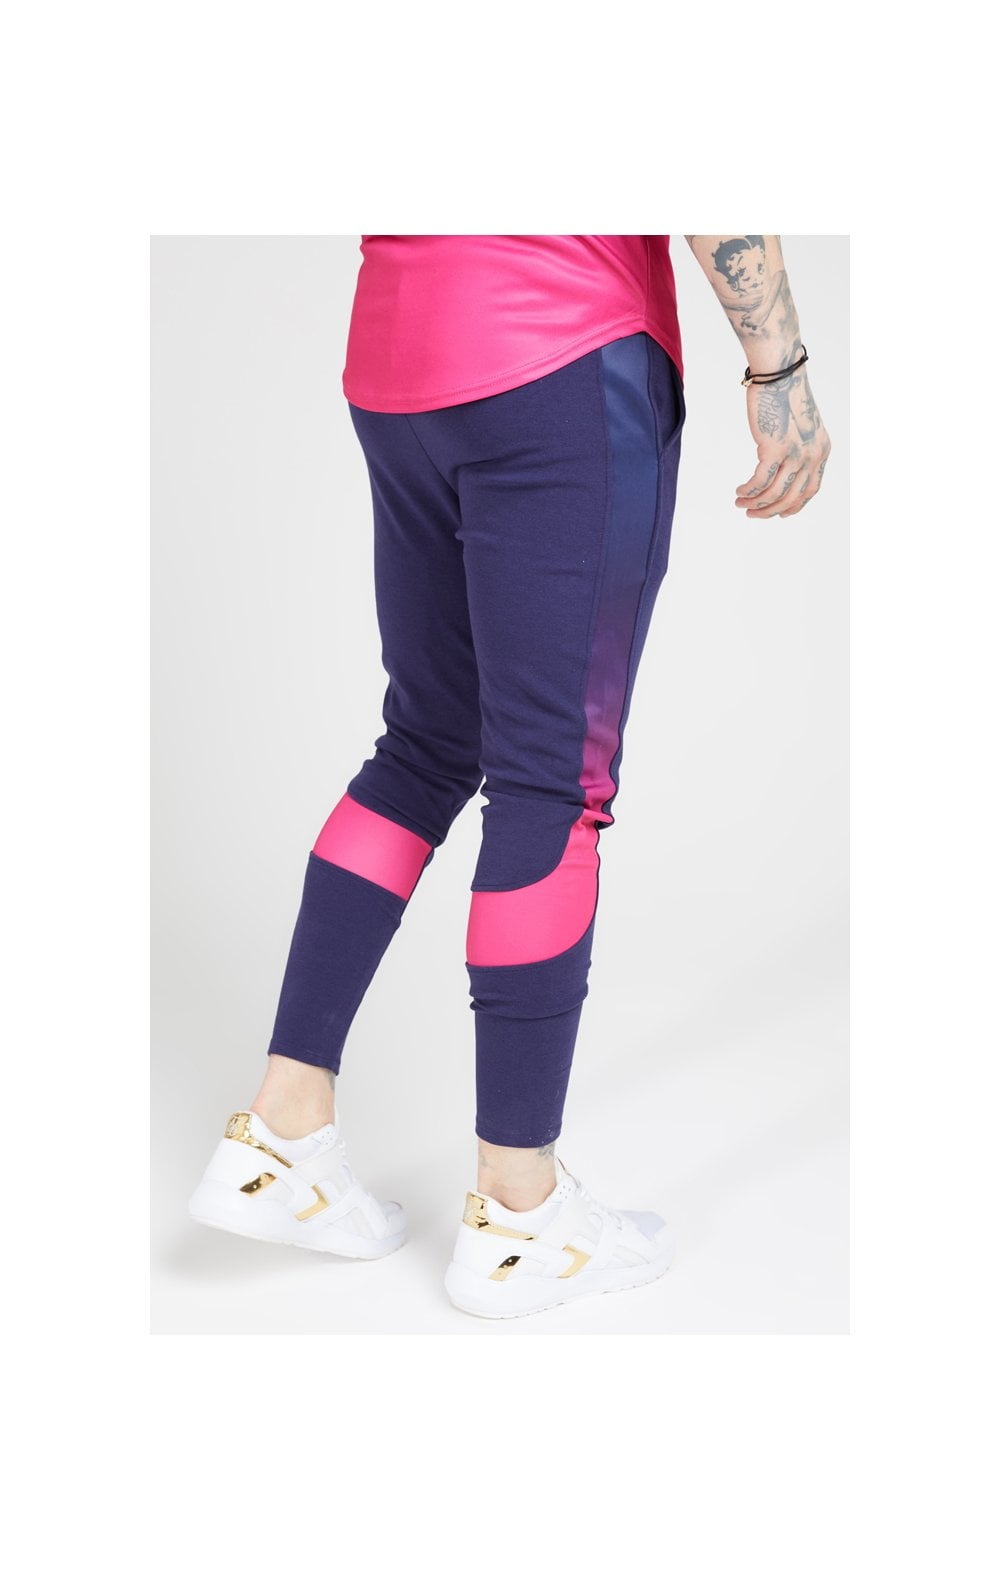 SikSilk Athlete Tech Fade Track Pants – Navy & Neon Fade (3)